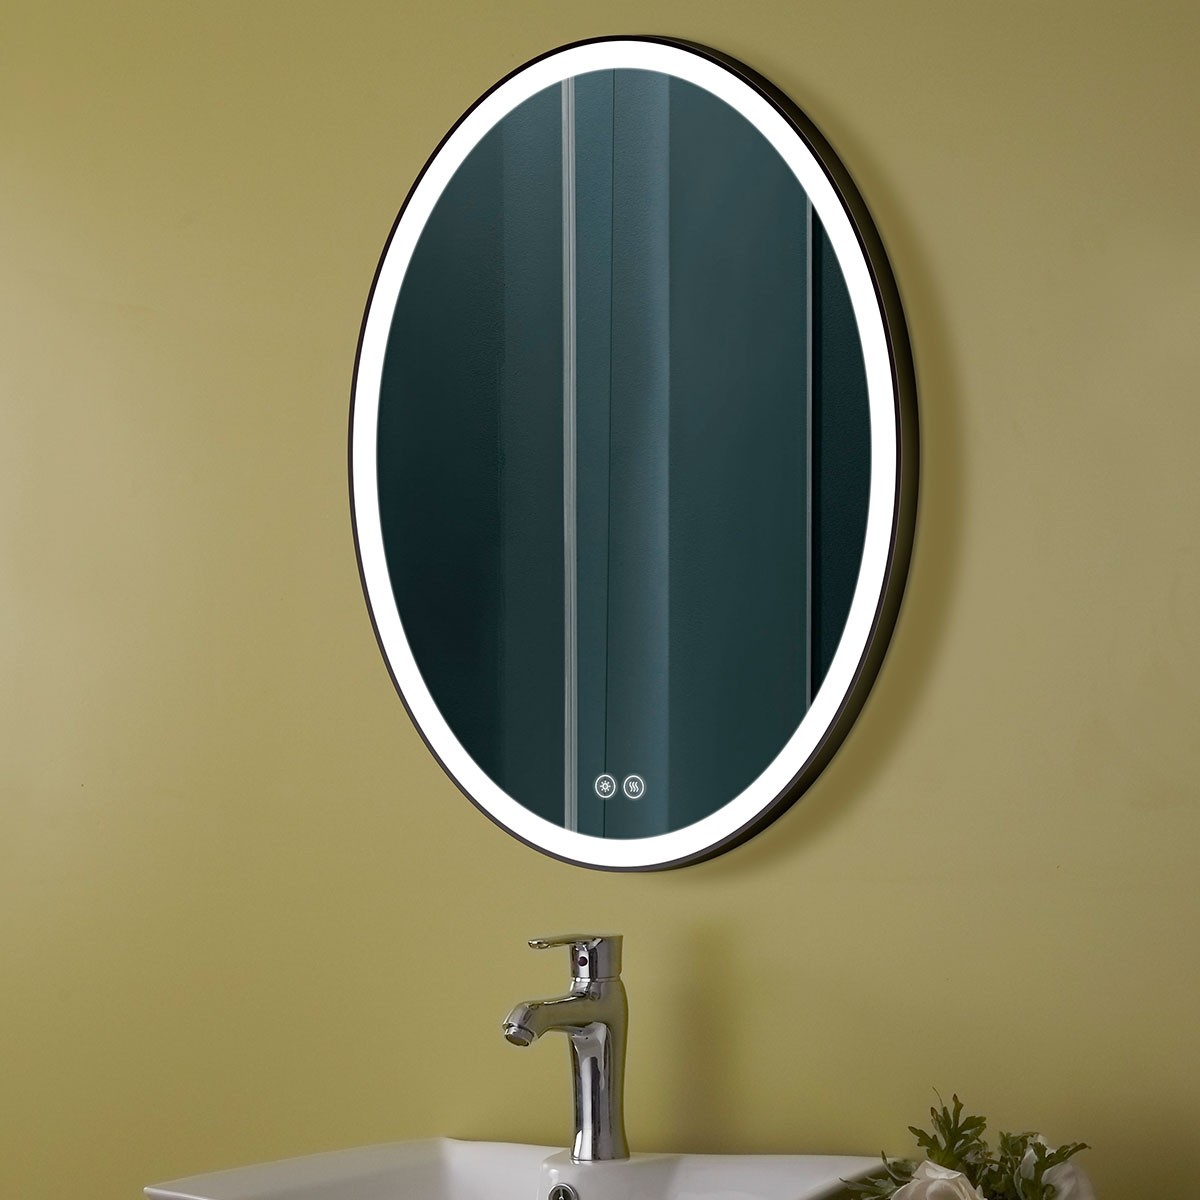 DECORAPORT 24 x 32 Inch LED Bathroom Mirror/Dress Mirror with Touch Button, Anti Fog, Dimmable, Vertical Mount (D1102-2432)